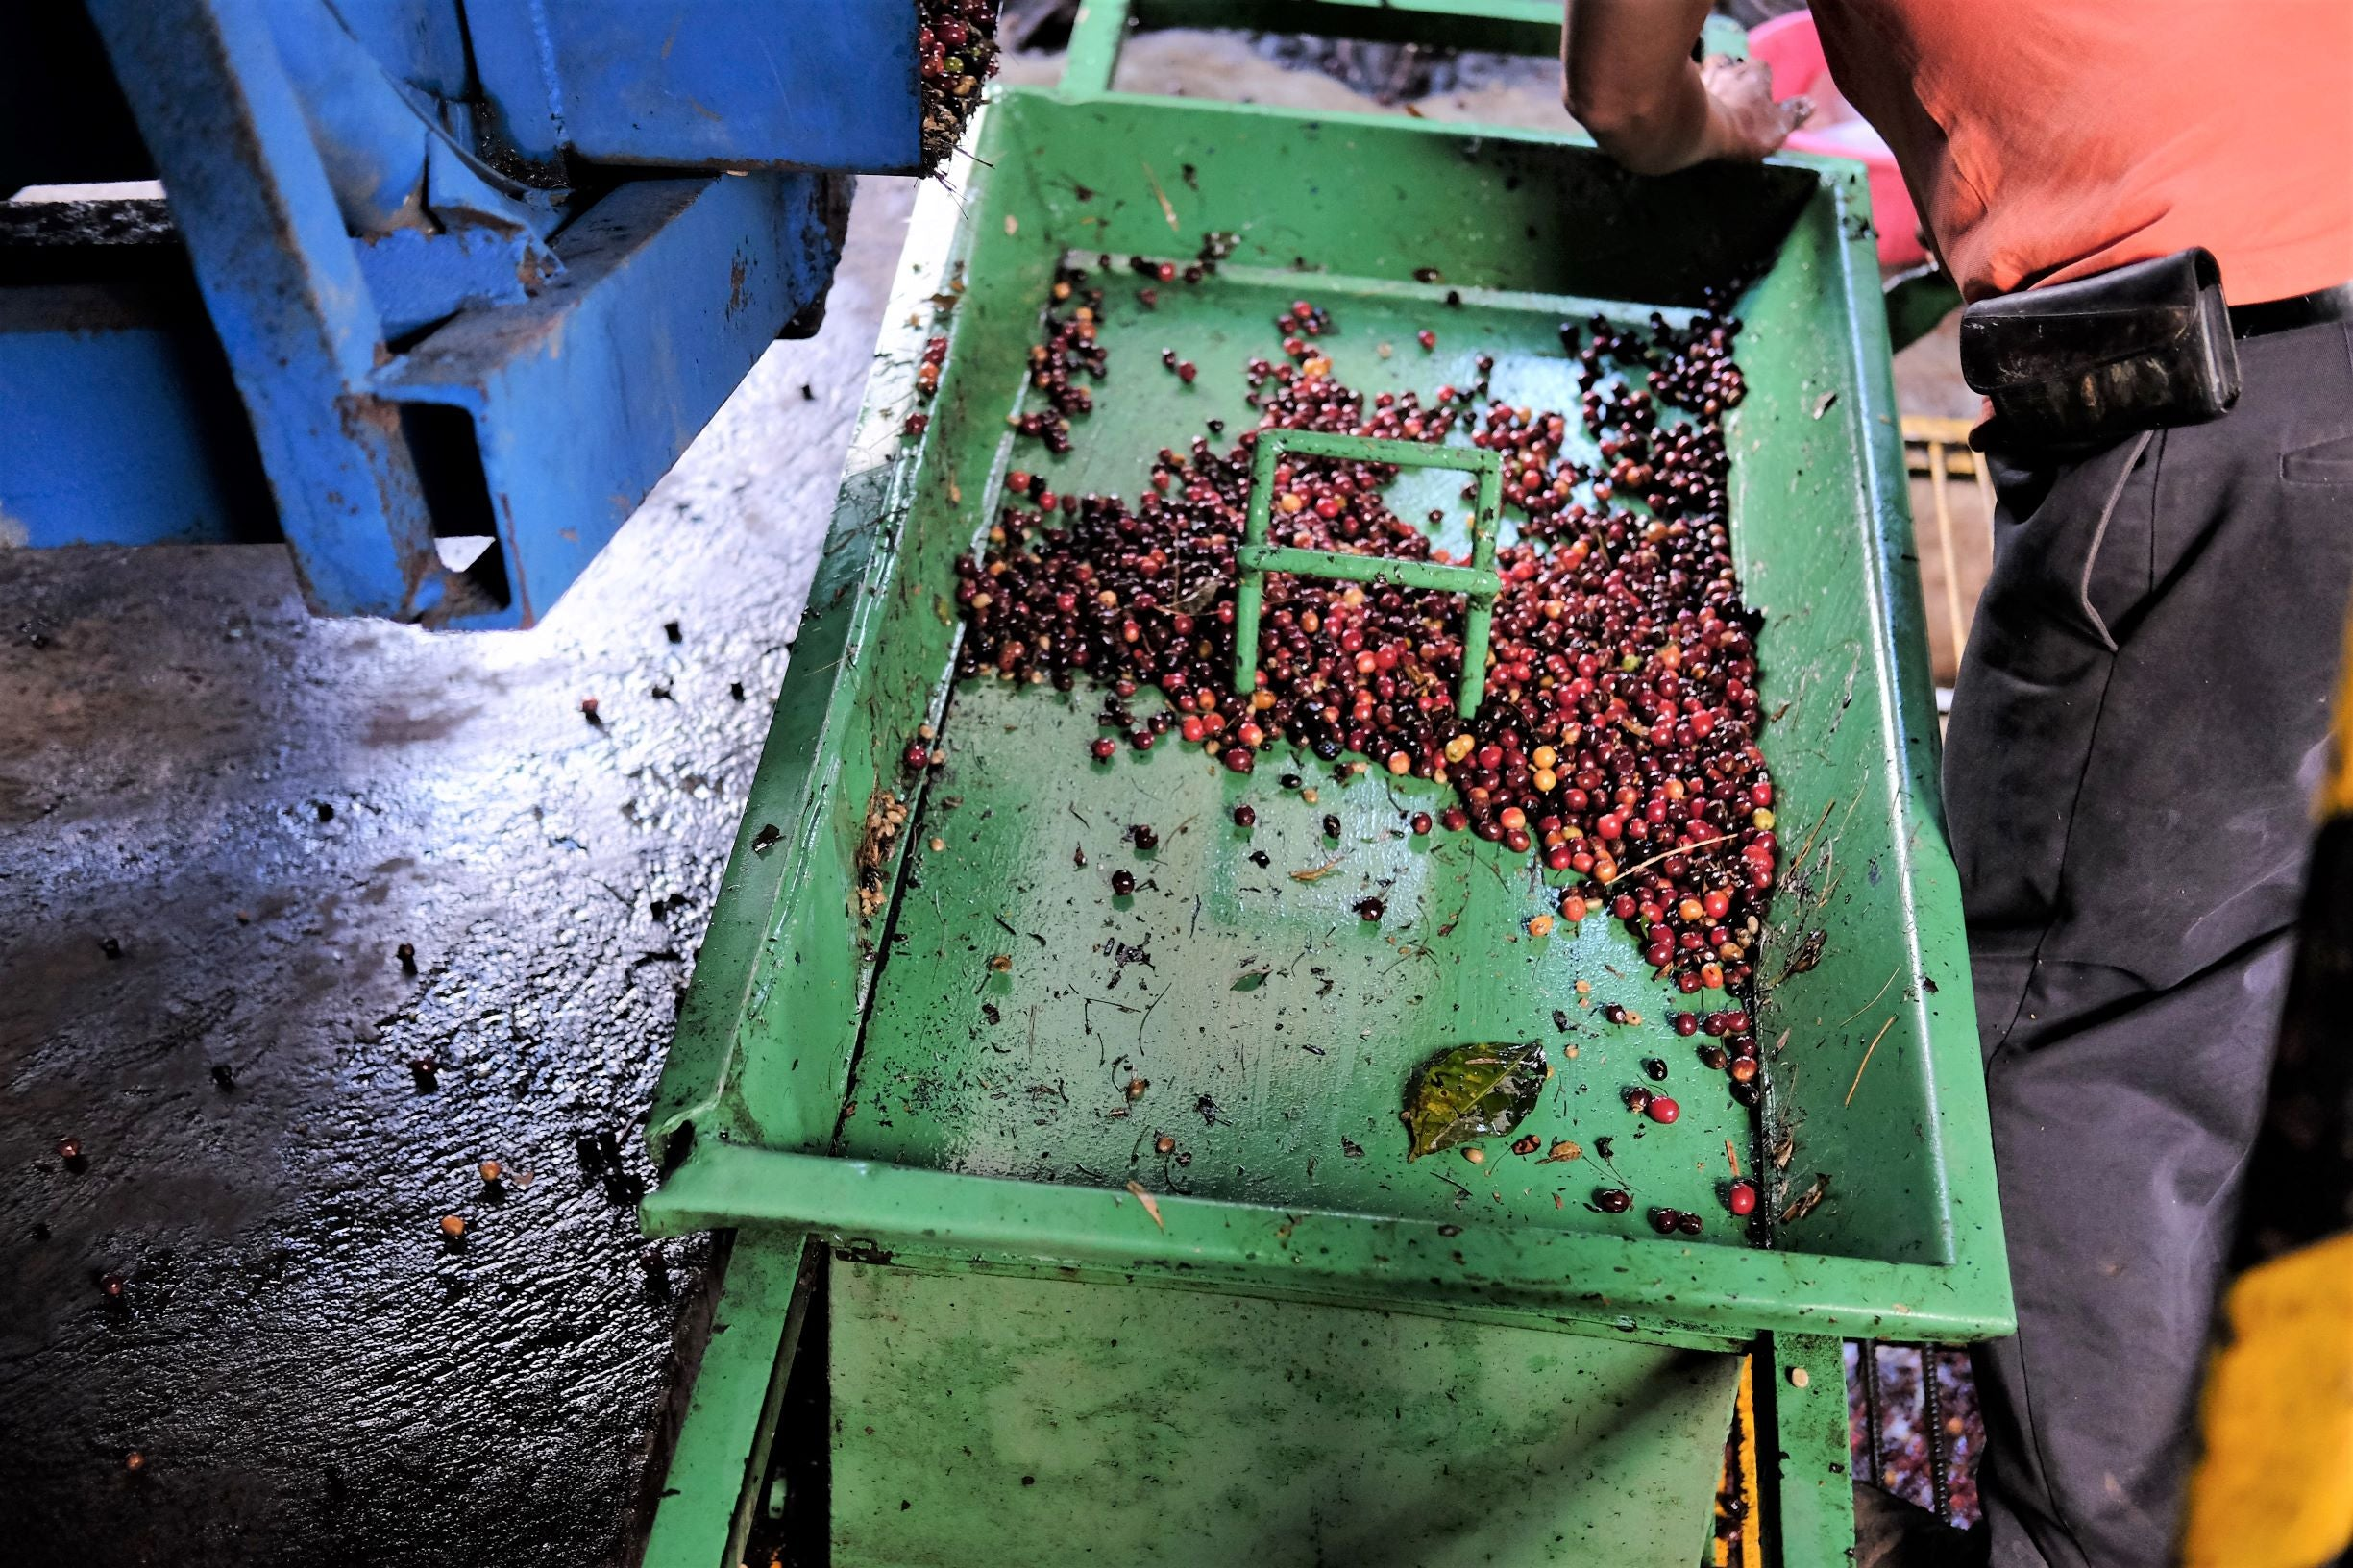 Measuring coffee cherries